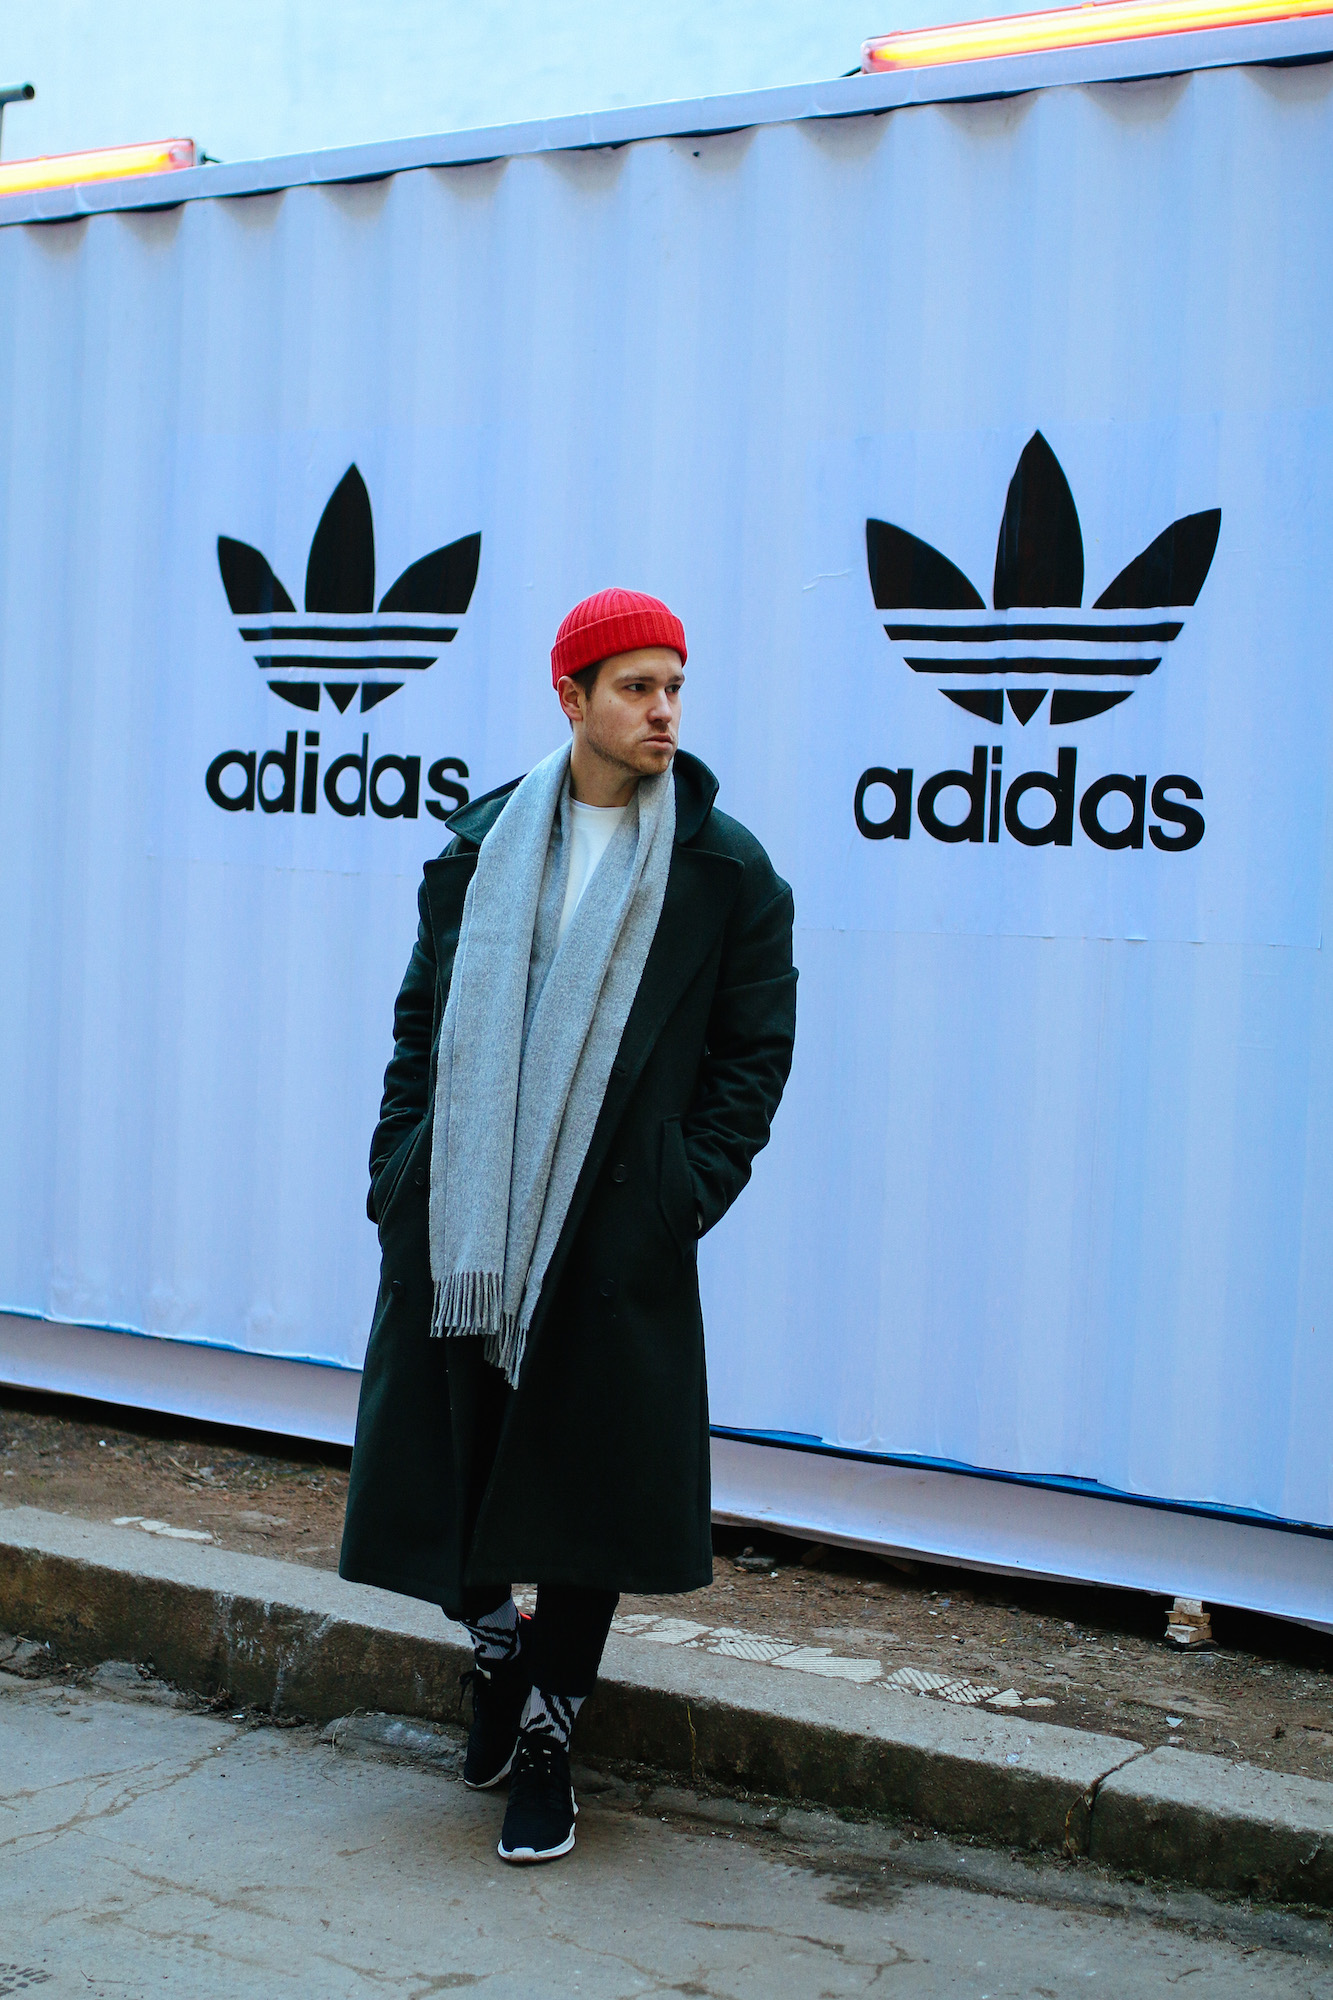 adidas originals EQT Support ADV Primeknit_Berlin_adidas Originals Party_Meanwhile in Awesometown_Wiener Maleblogger_Modeblogger17